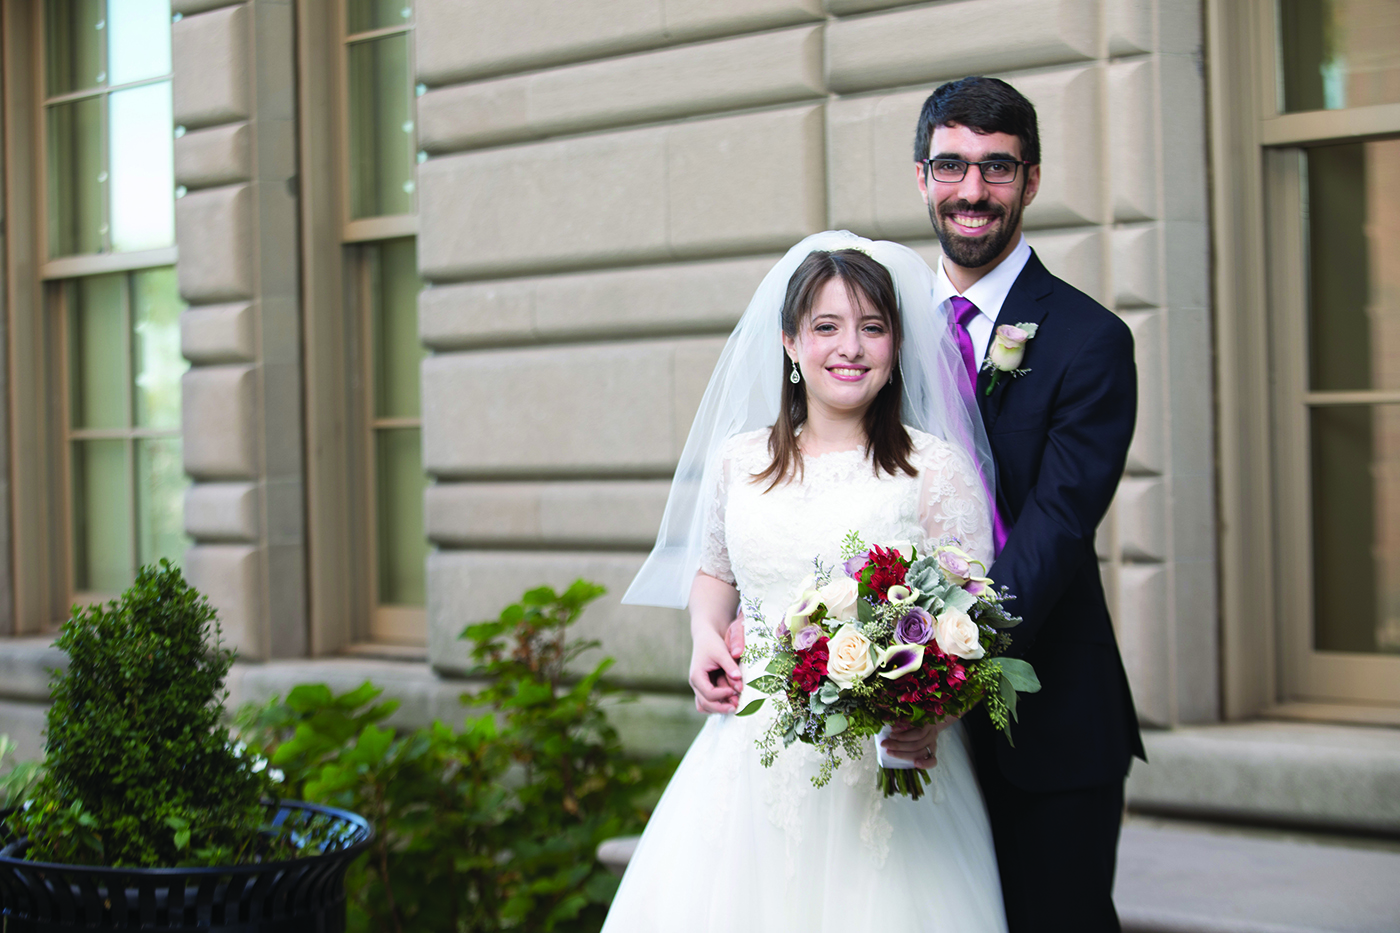 Yael & Adam's Wedding at Faculty House at Columbia U. (Laibel Schwartz Photography)